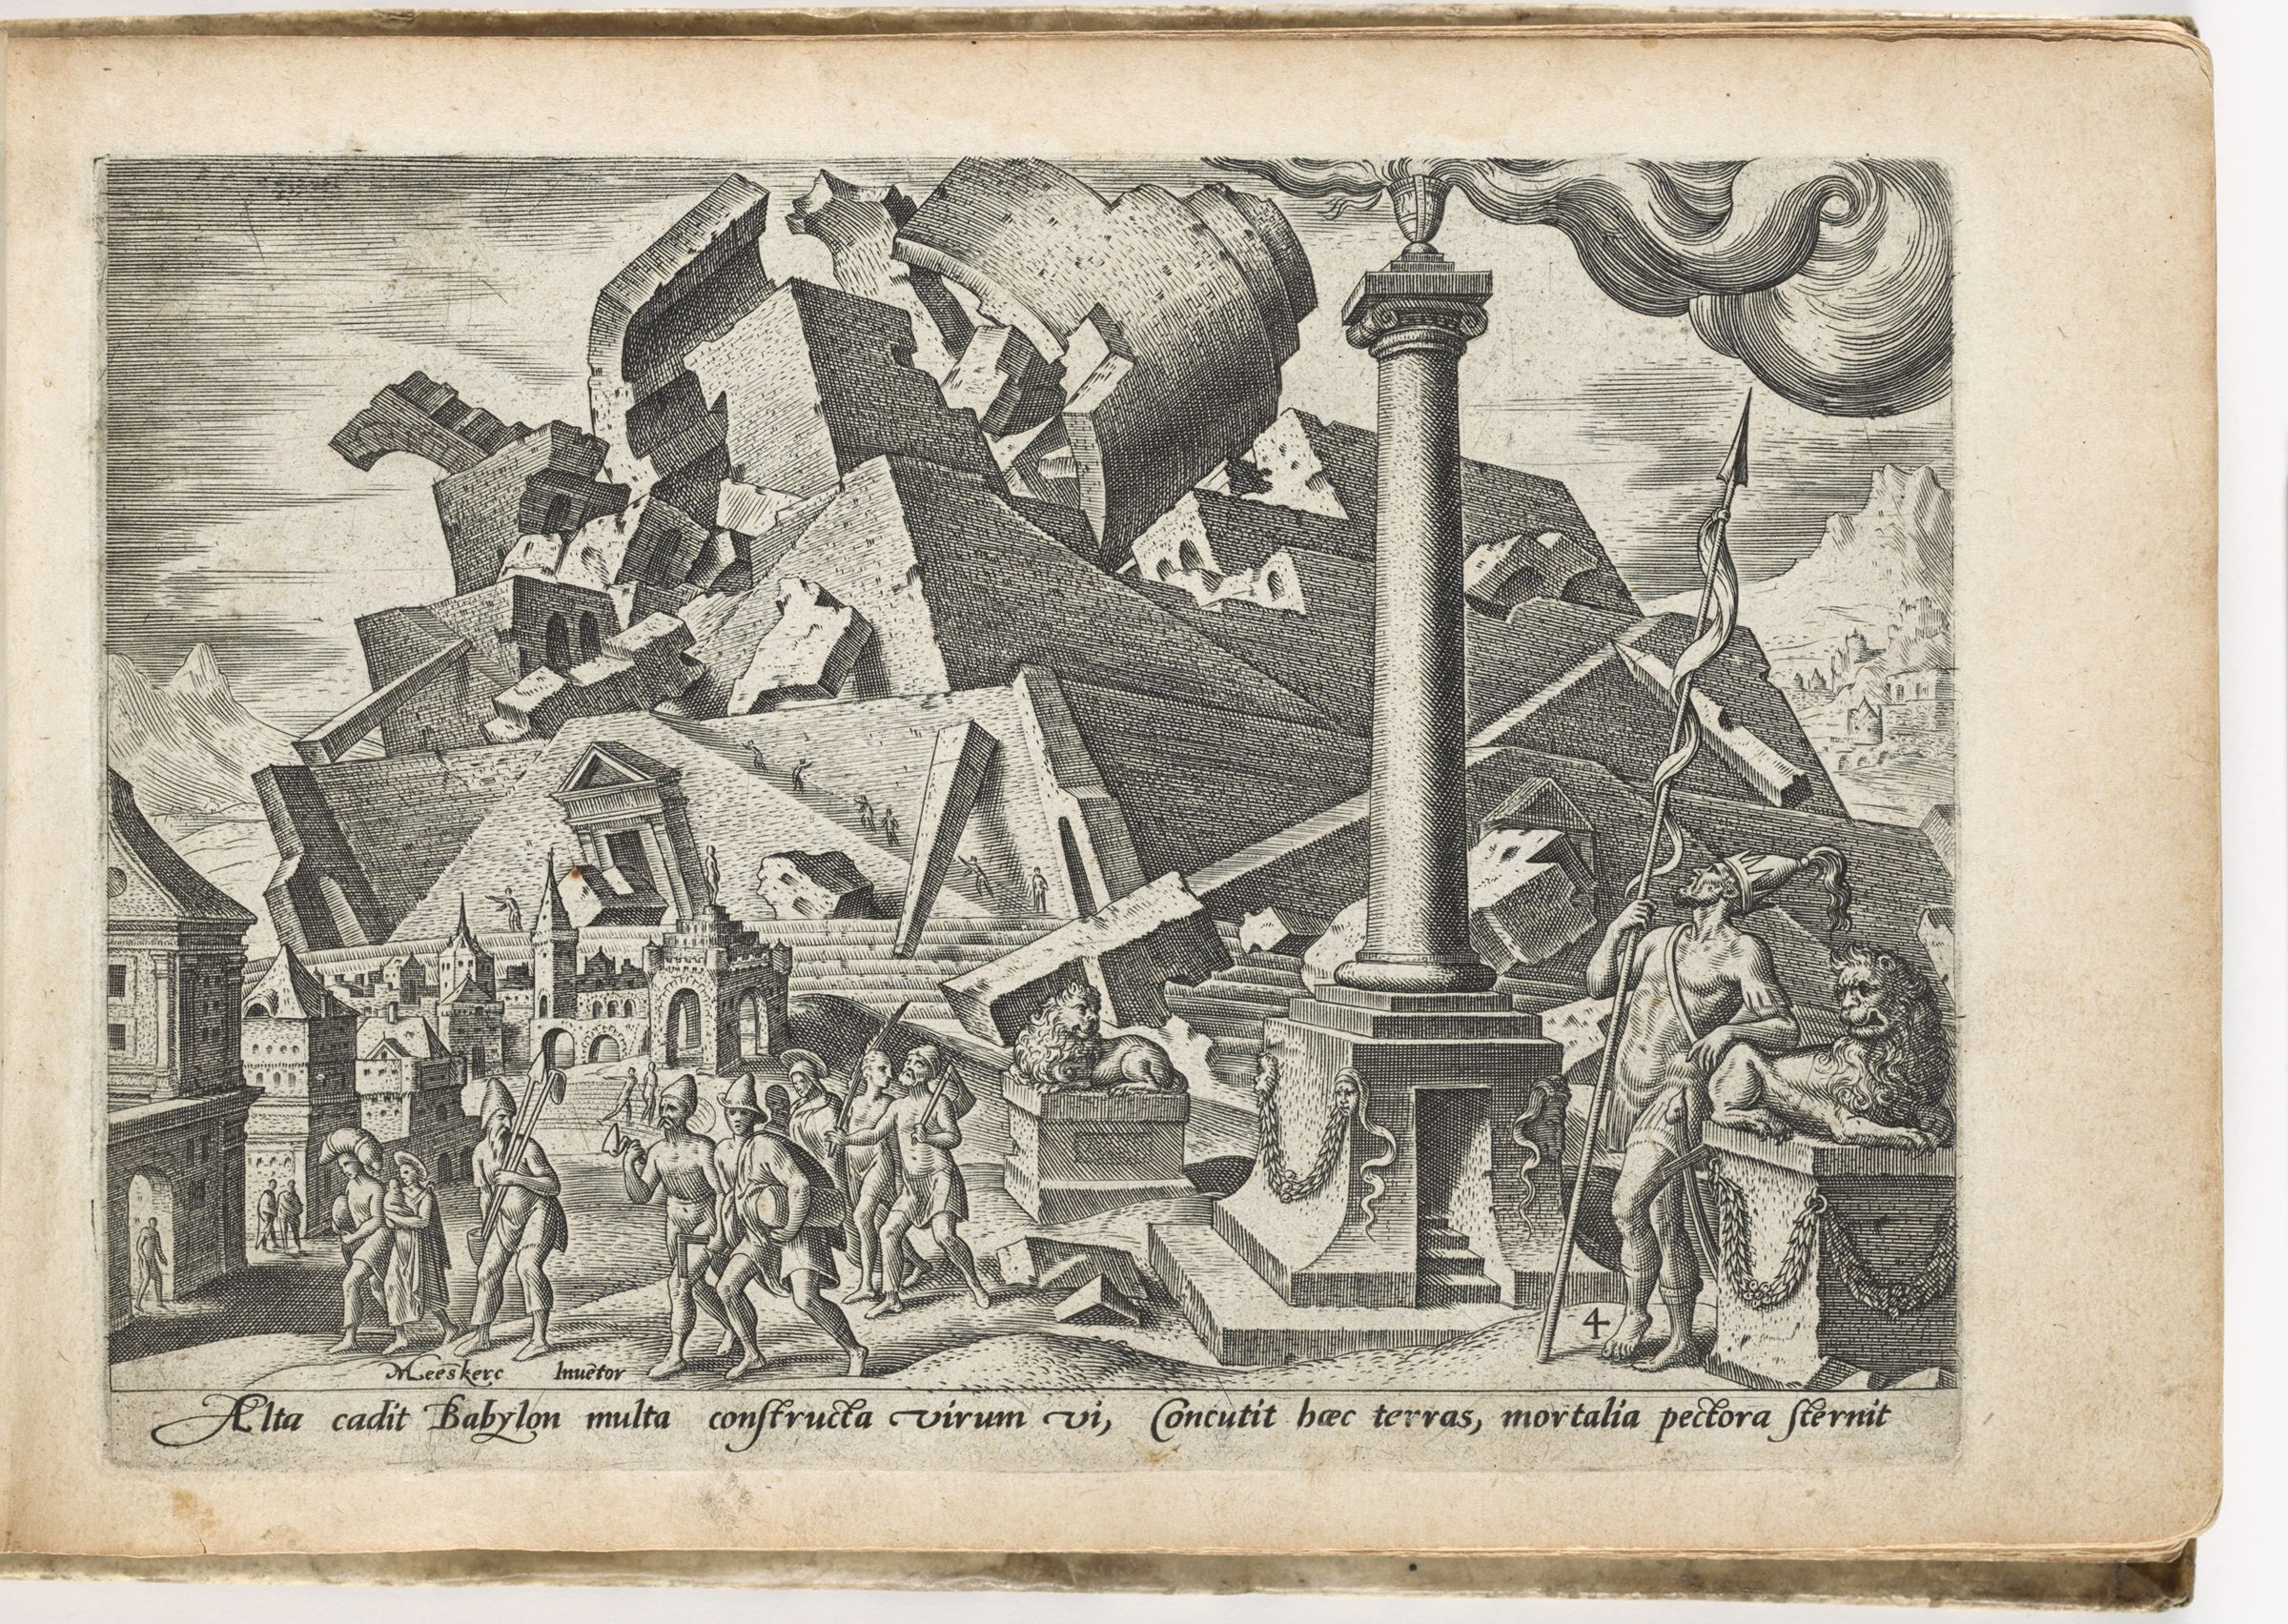 The Destruction Of The Tower Of Babel And The Dispersion Of Peoples